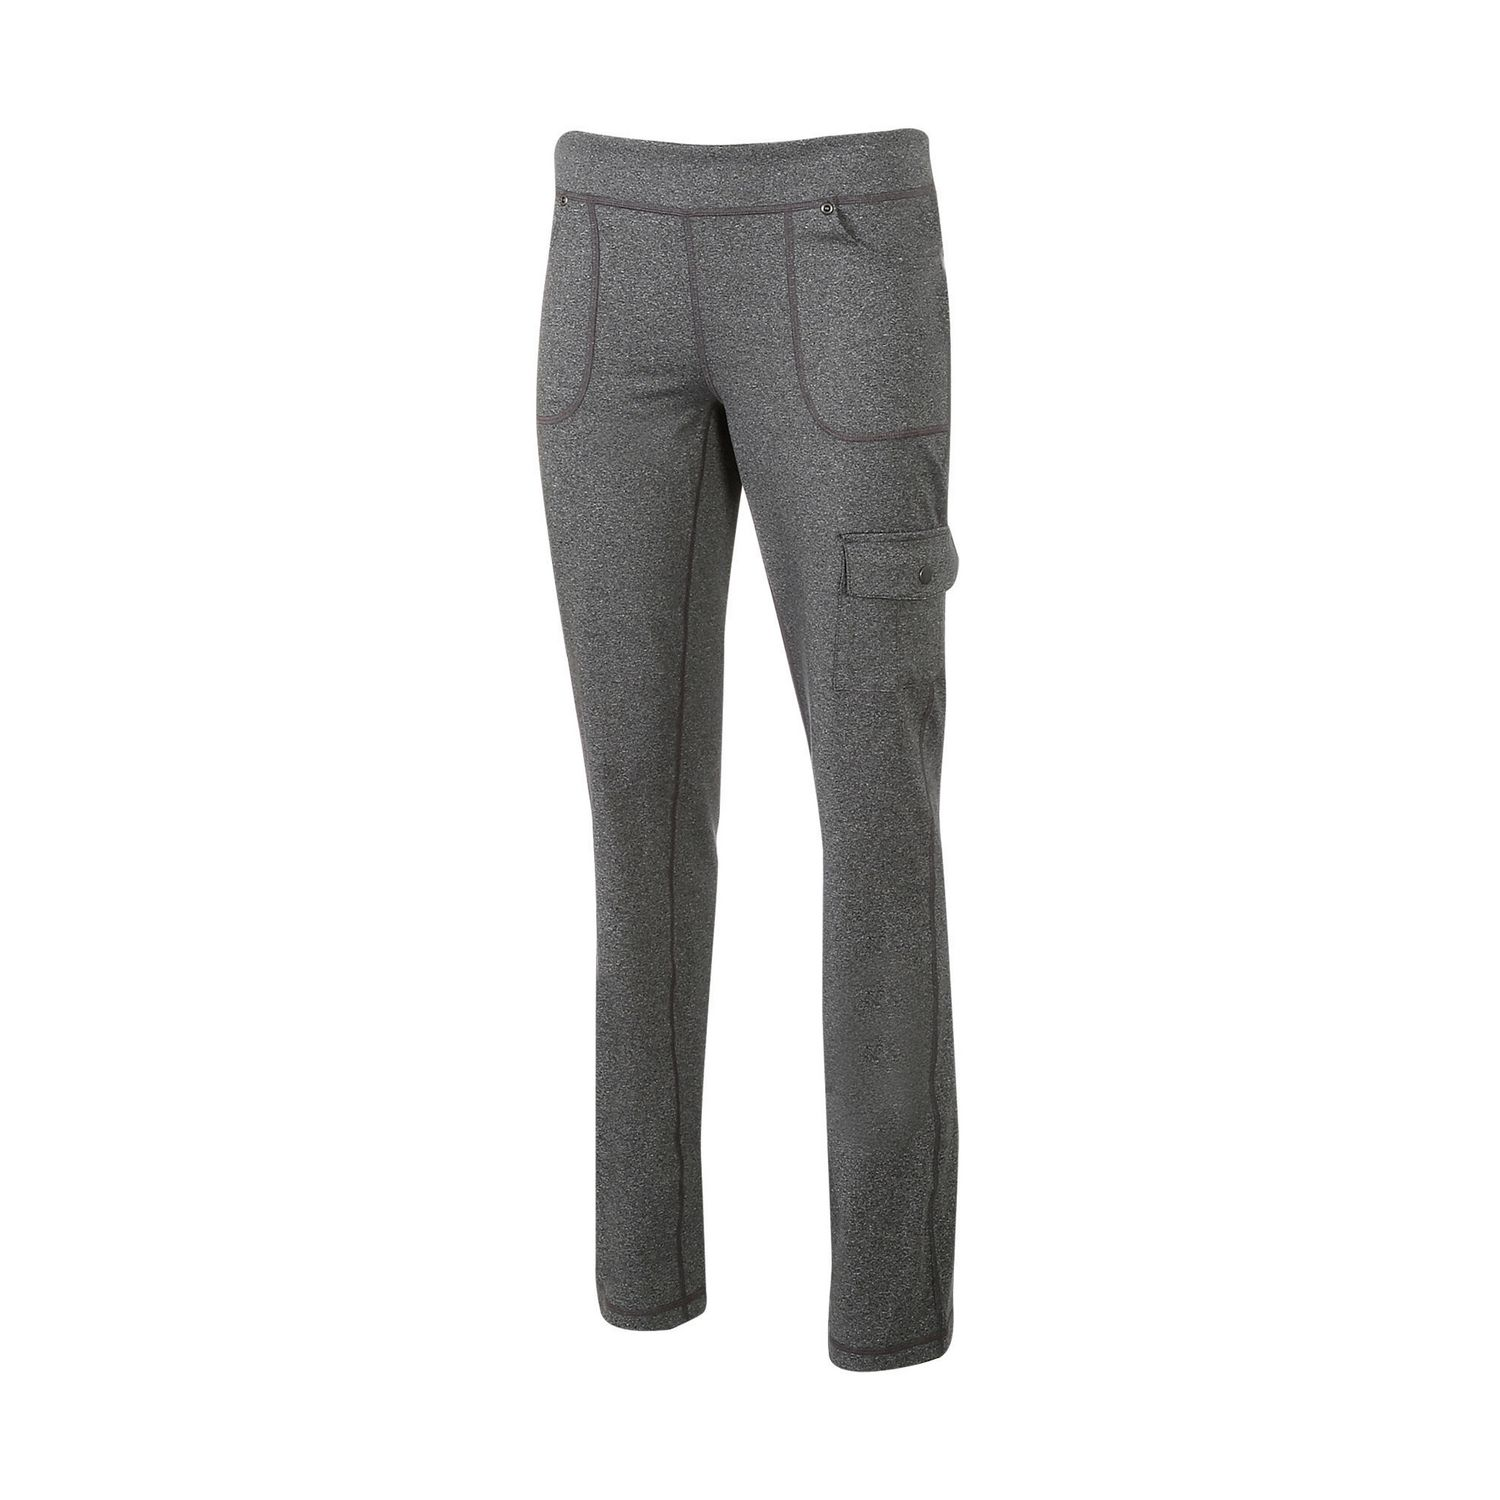 Athletic Works Womens Pull-On Cargo Pants  Walmart Canada-7250